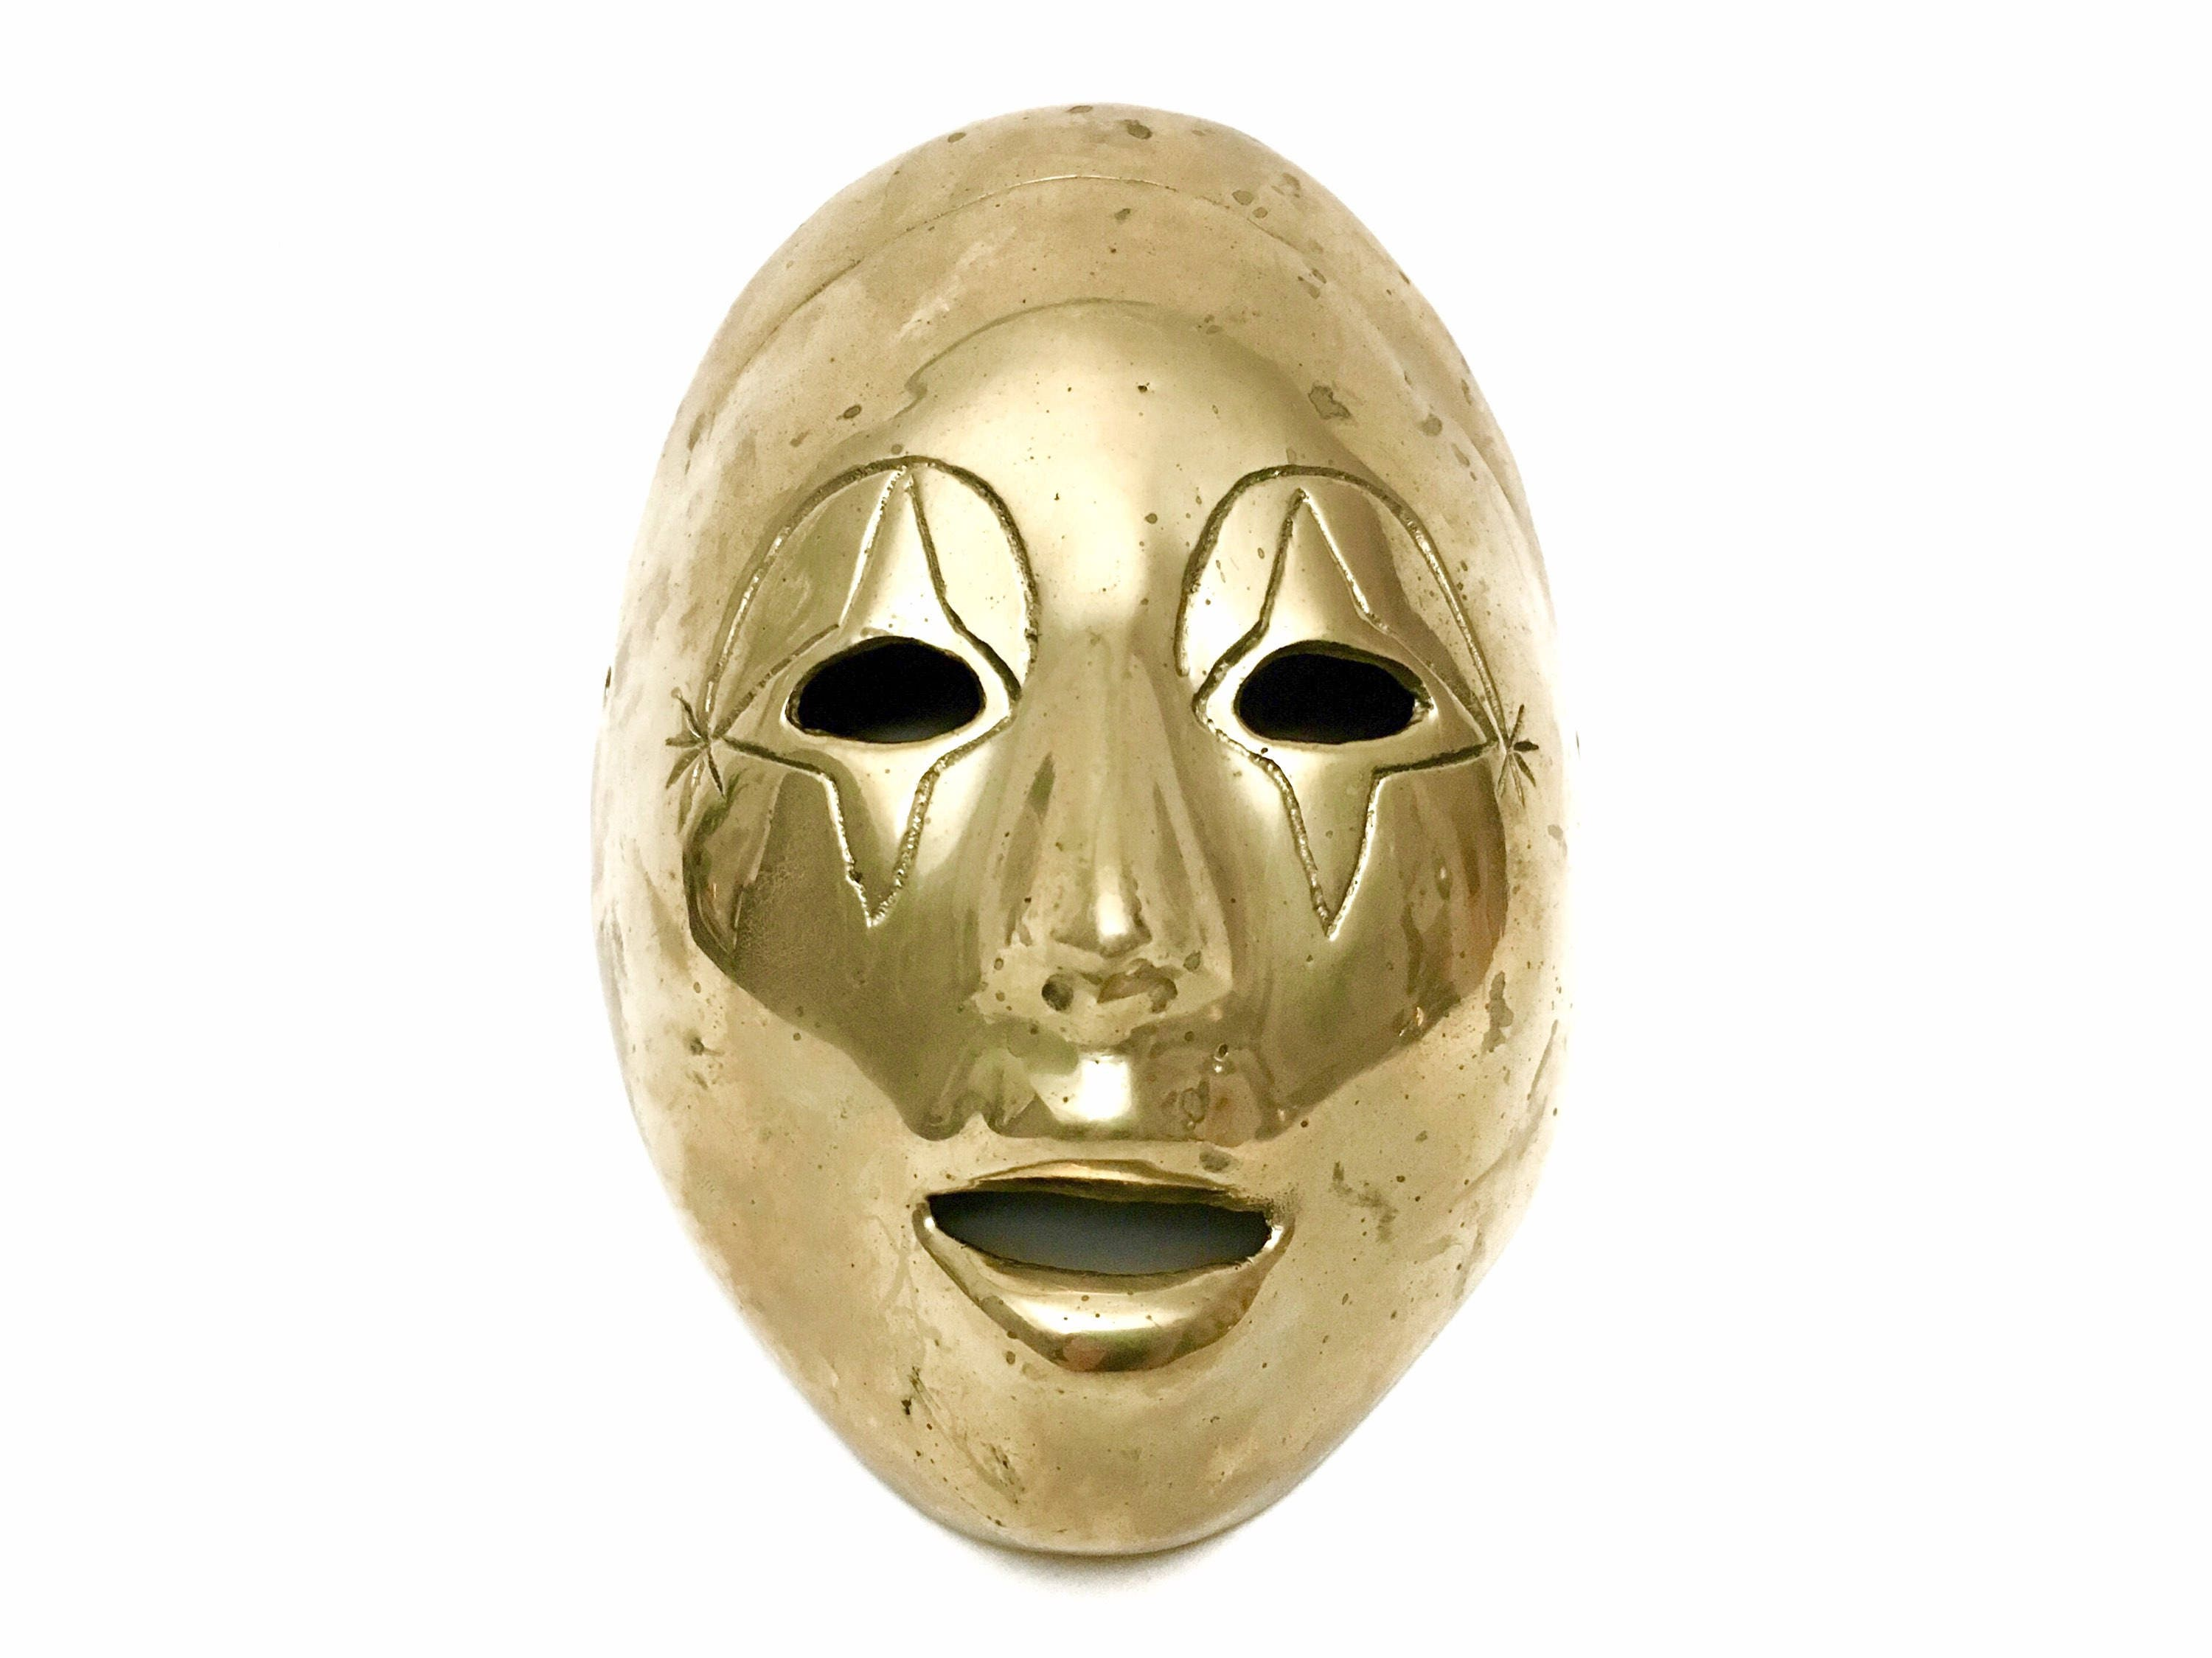 Vintage Brass Theater Drama Face Mask Masquerade Ball Mardi